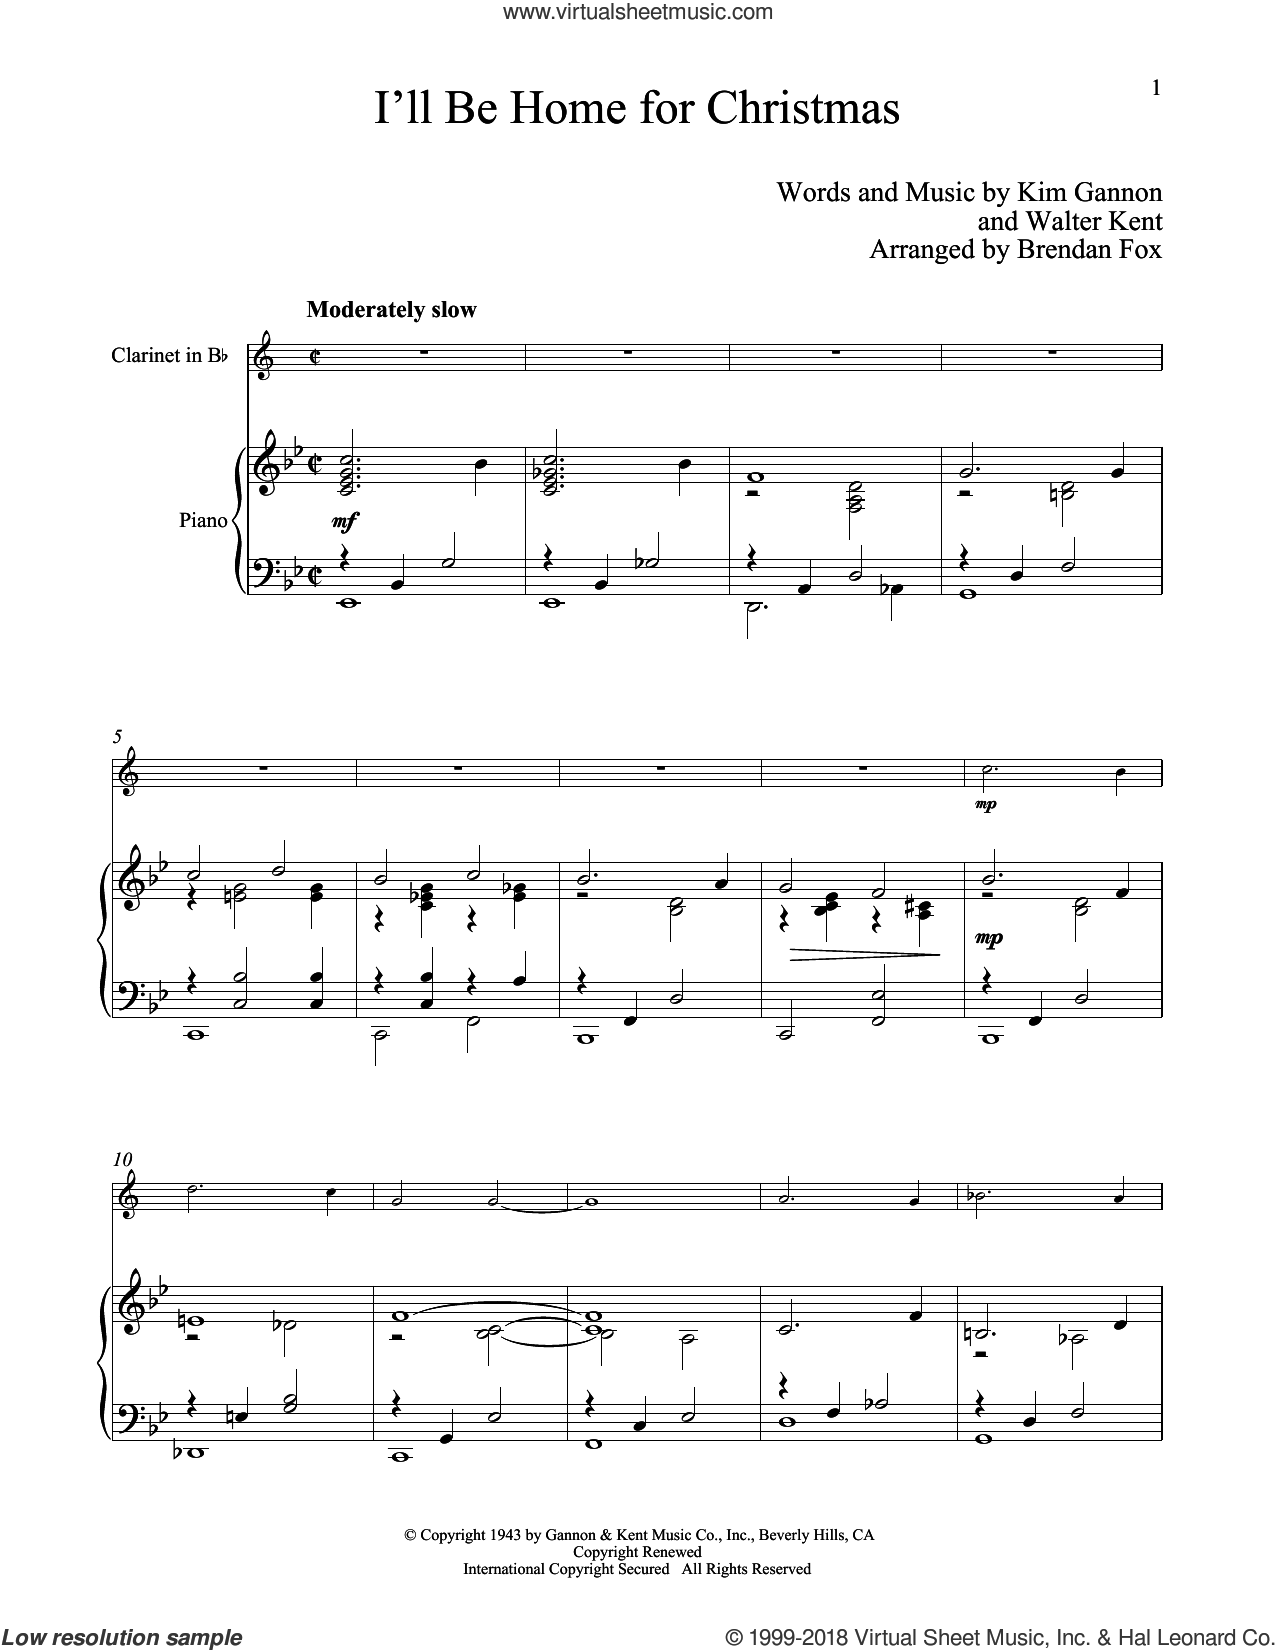 I'll Be Home For Christmas sheet music for clarinet and piano by Kim Gannon and Walter Kent, classical score, intermediate skill level